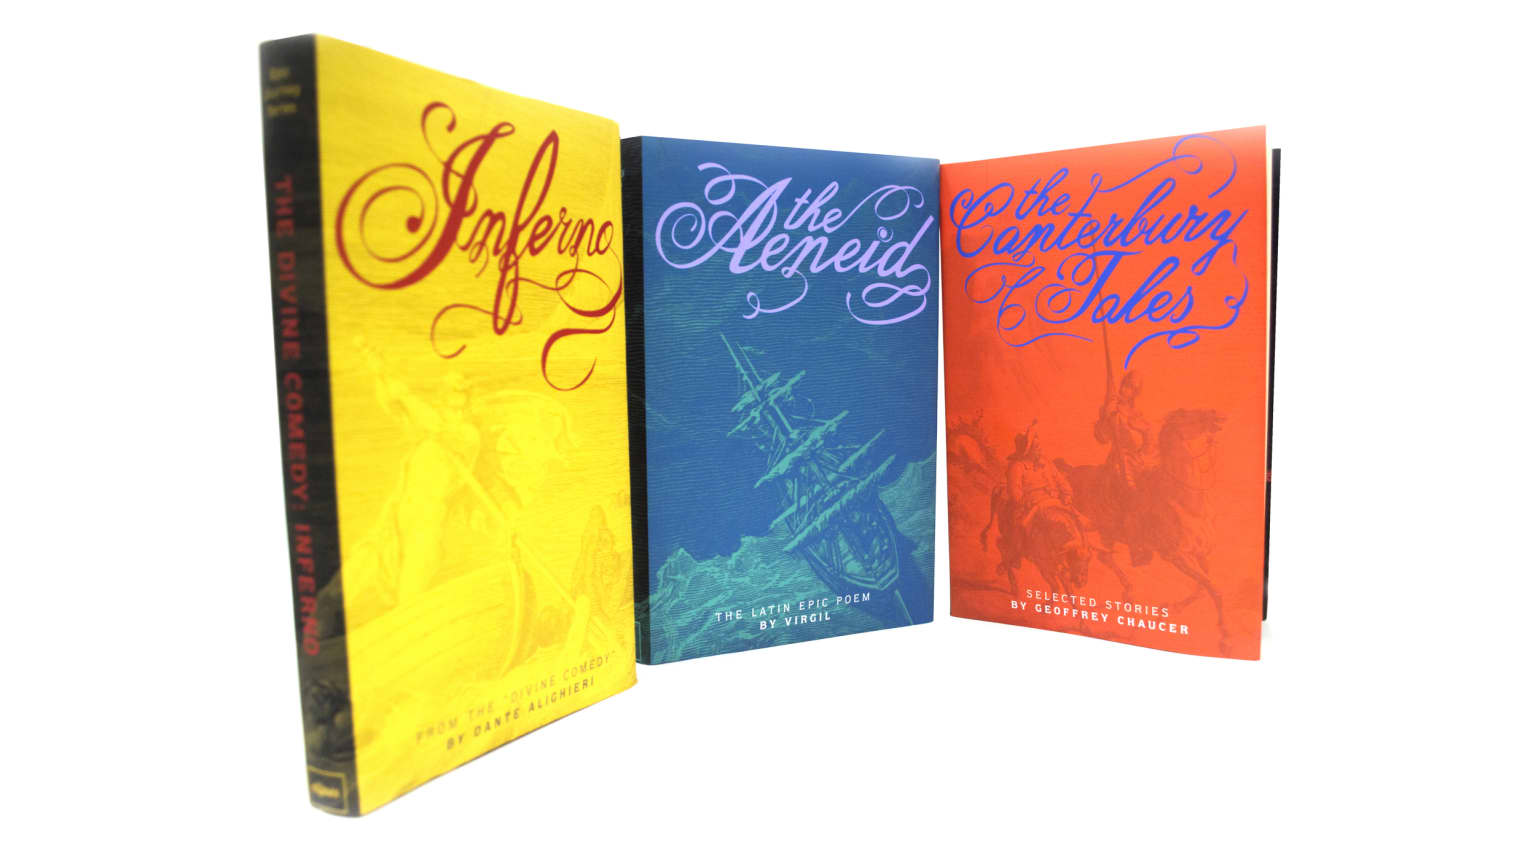 The Epic Journey Series